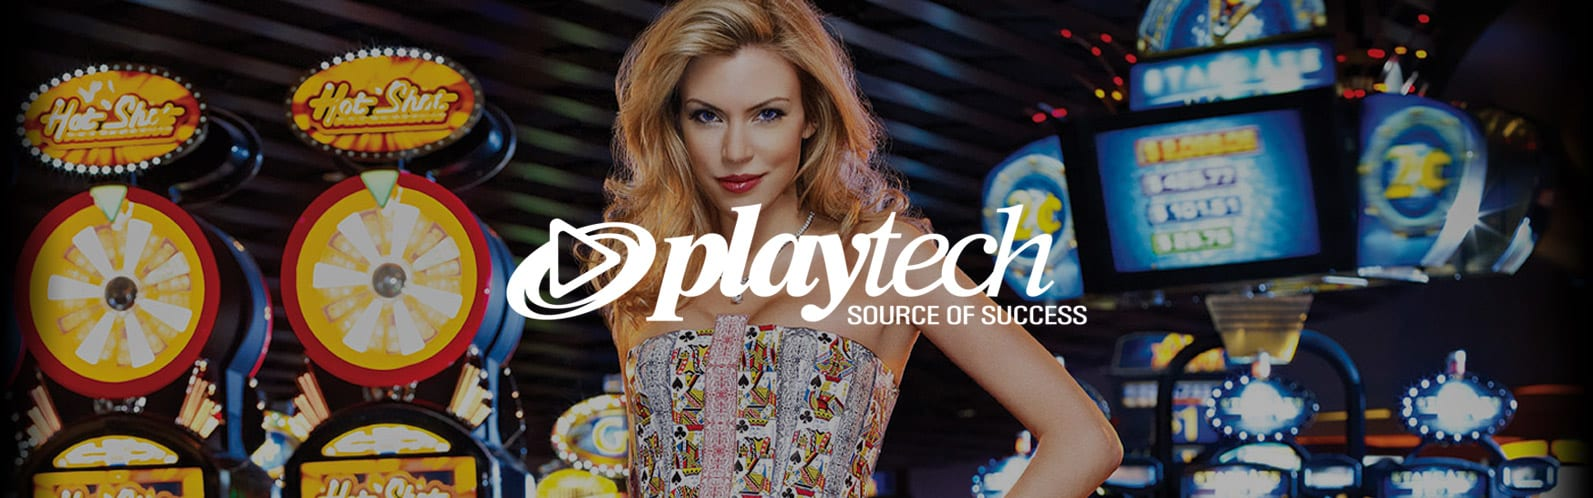 Playtech casino banner